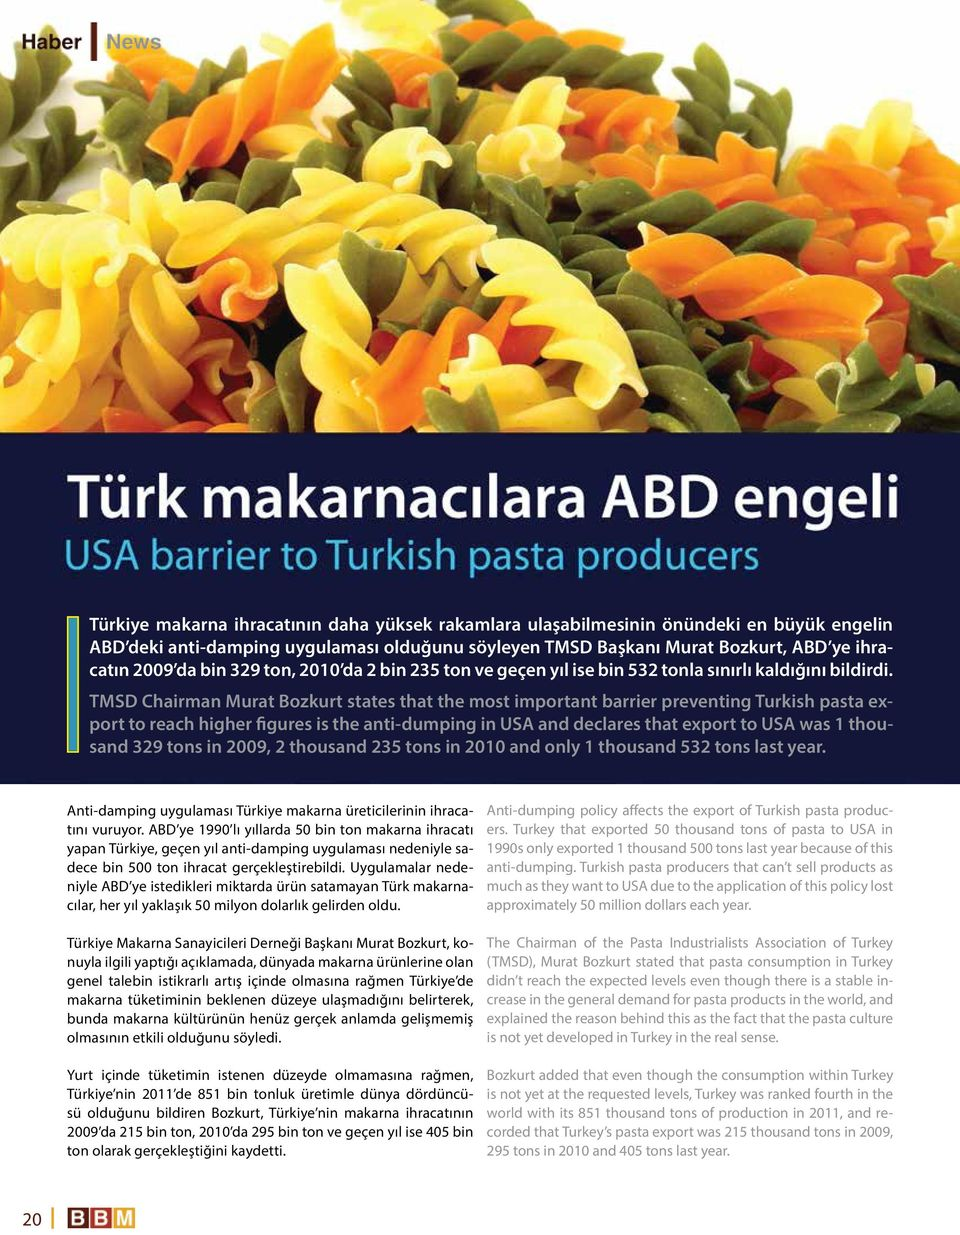 TMSD Chairman Murat Bozkurt states that the most important barrier preventing Turkish pasta export to reach higher figures is the anti-dumping in USA and declares that export to USA was 1 thousand